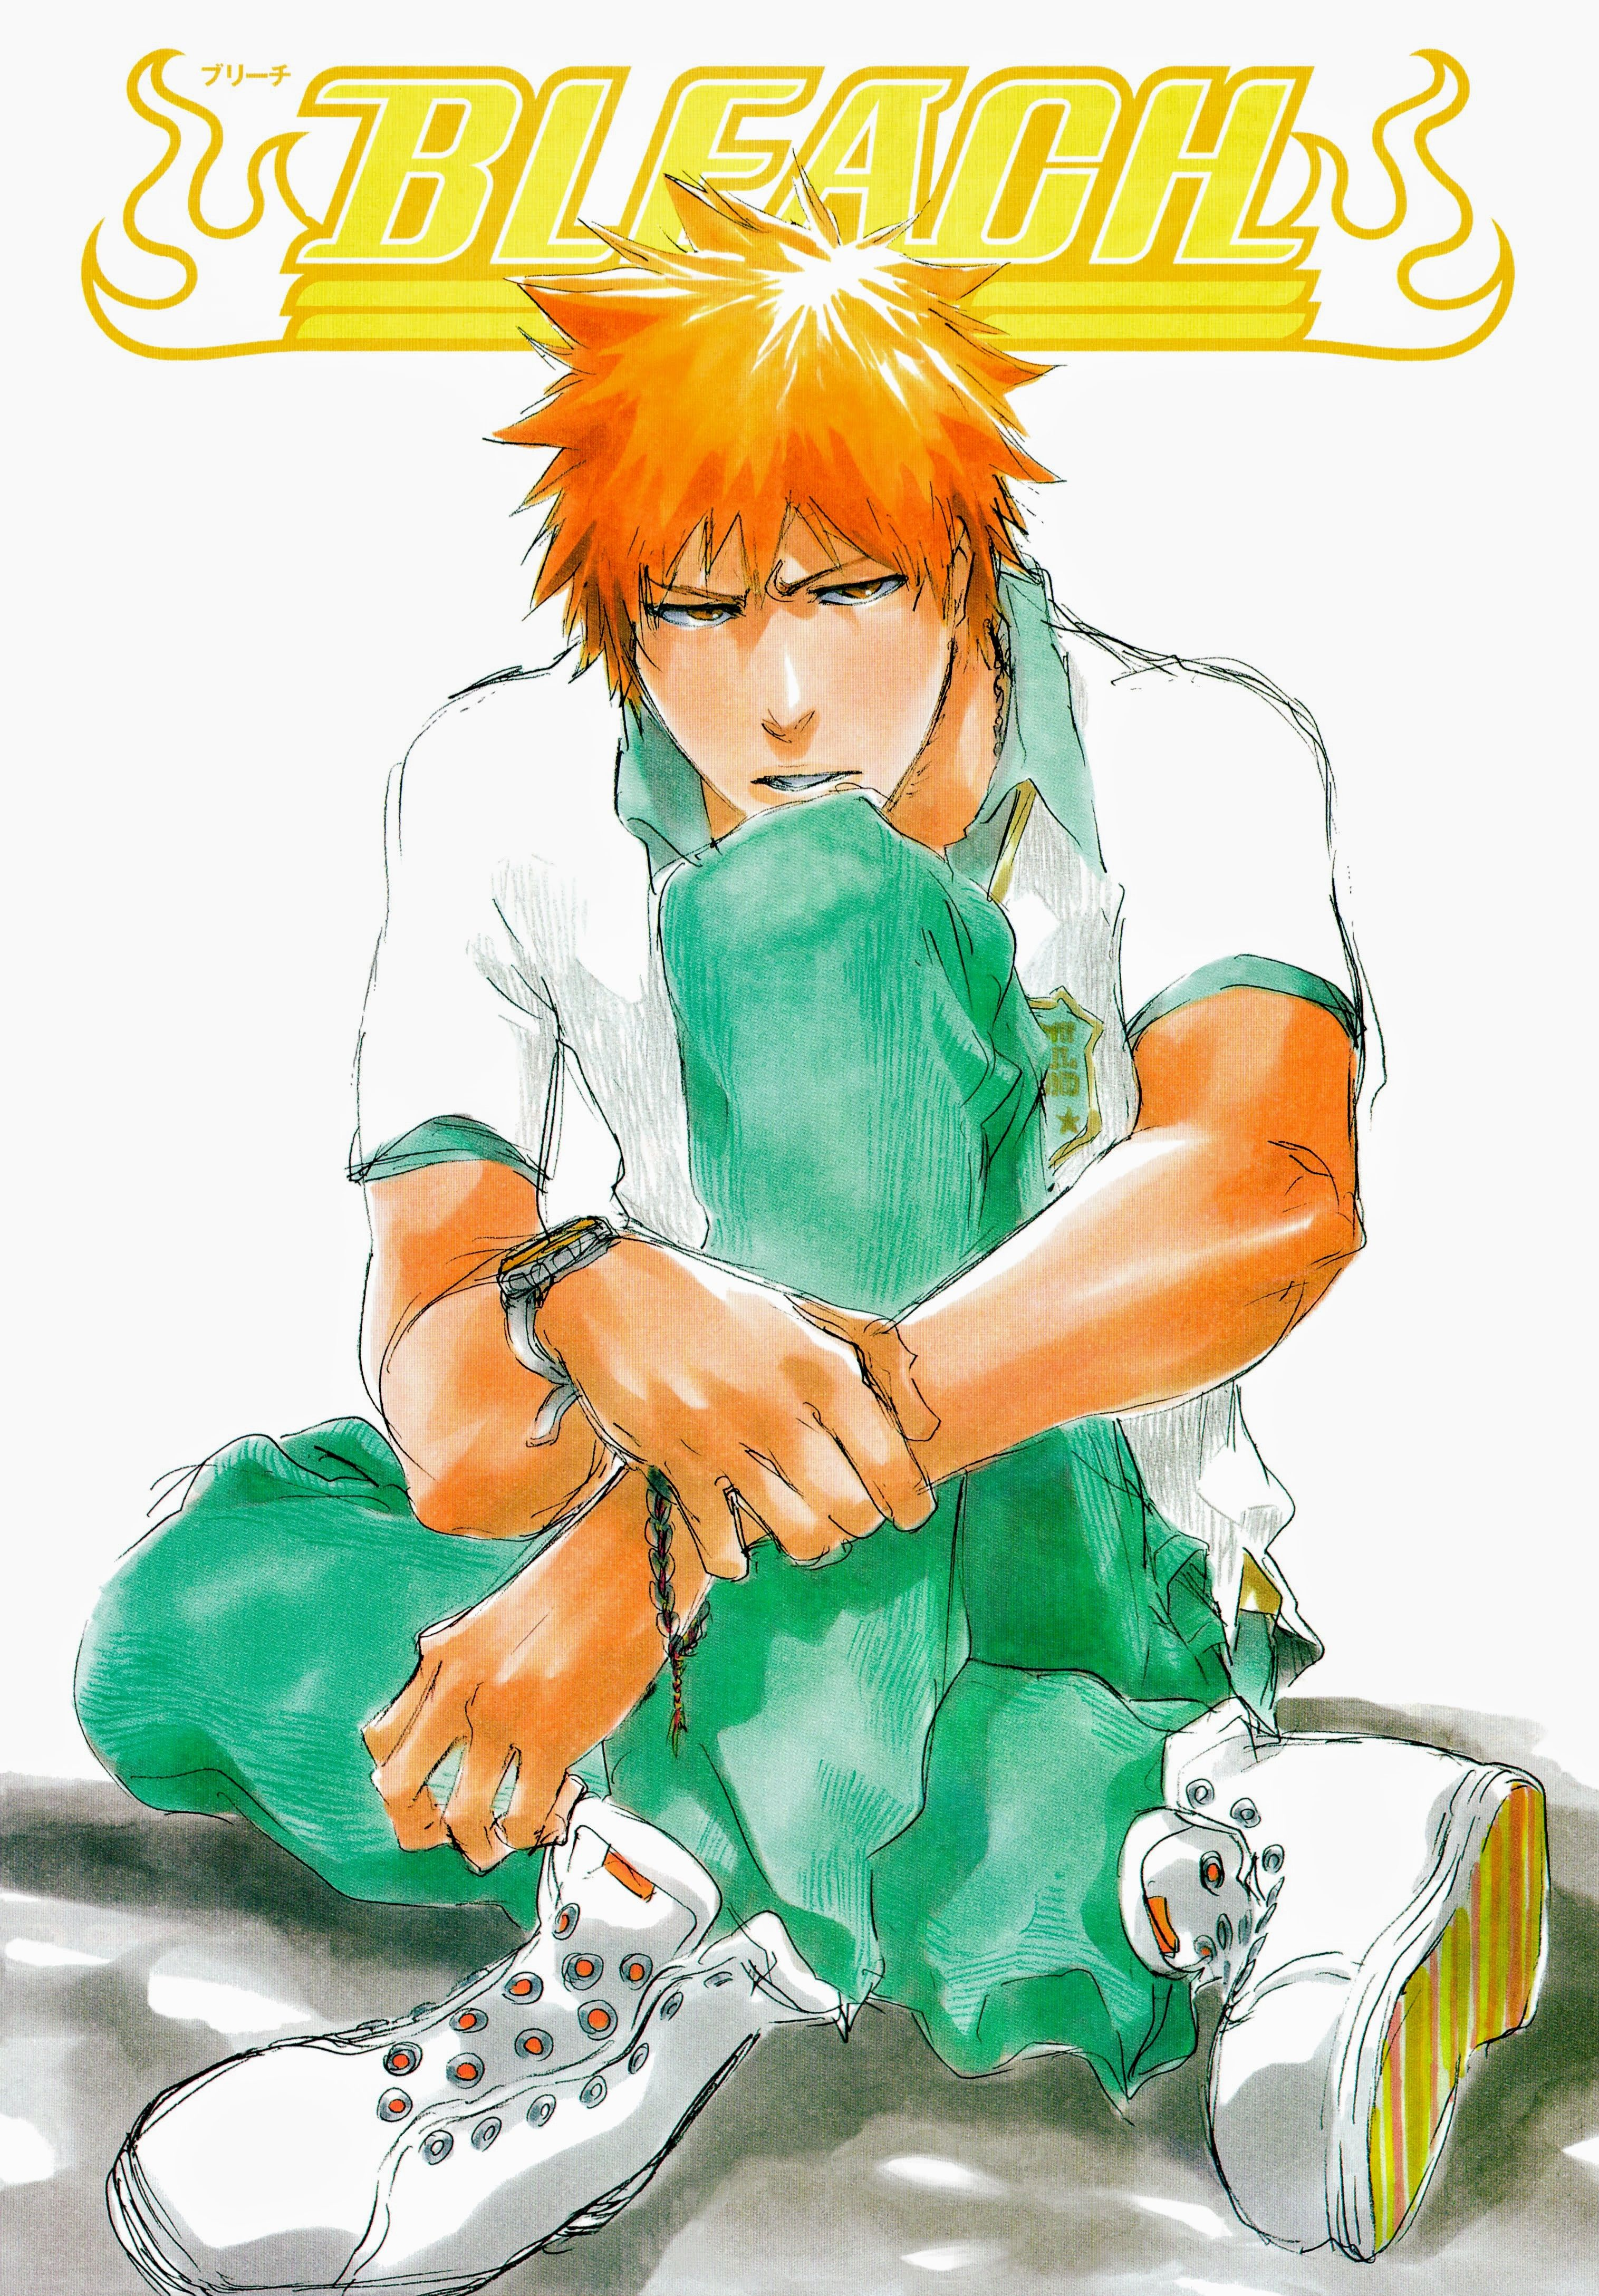 Pin by Ev Ma on Bleach Bleach anime, Bleach manga, Bleach